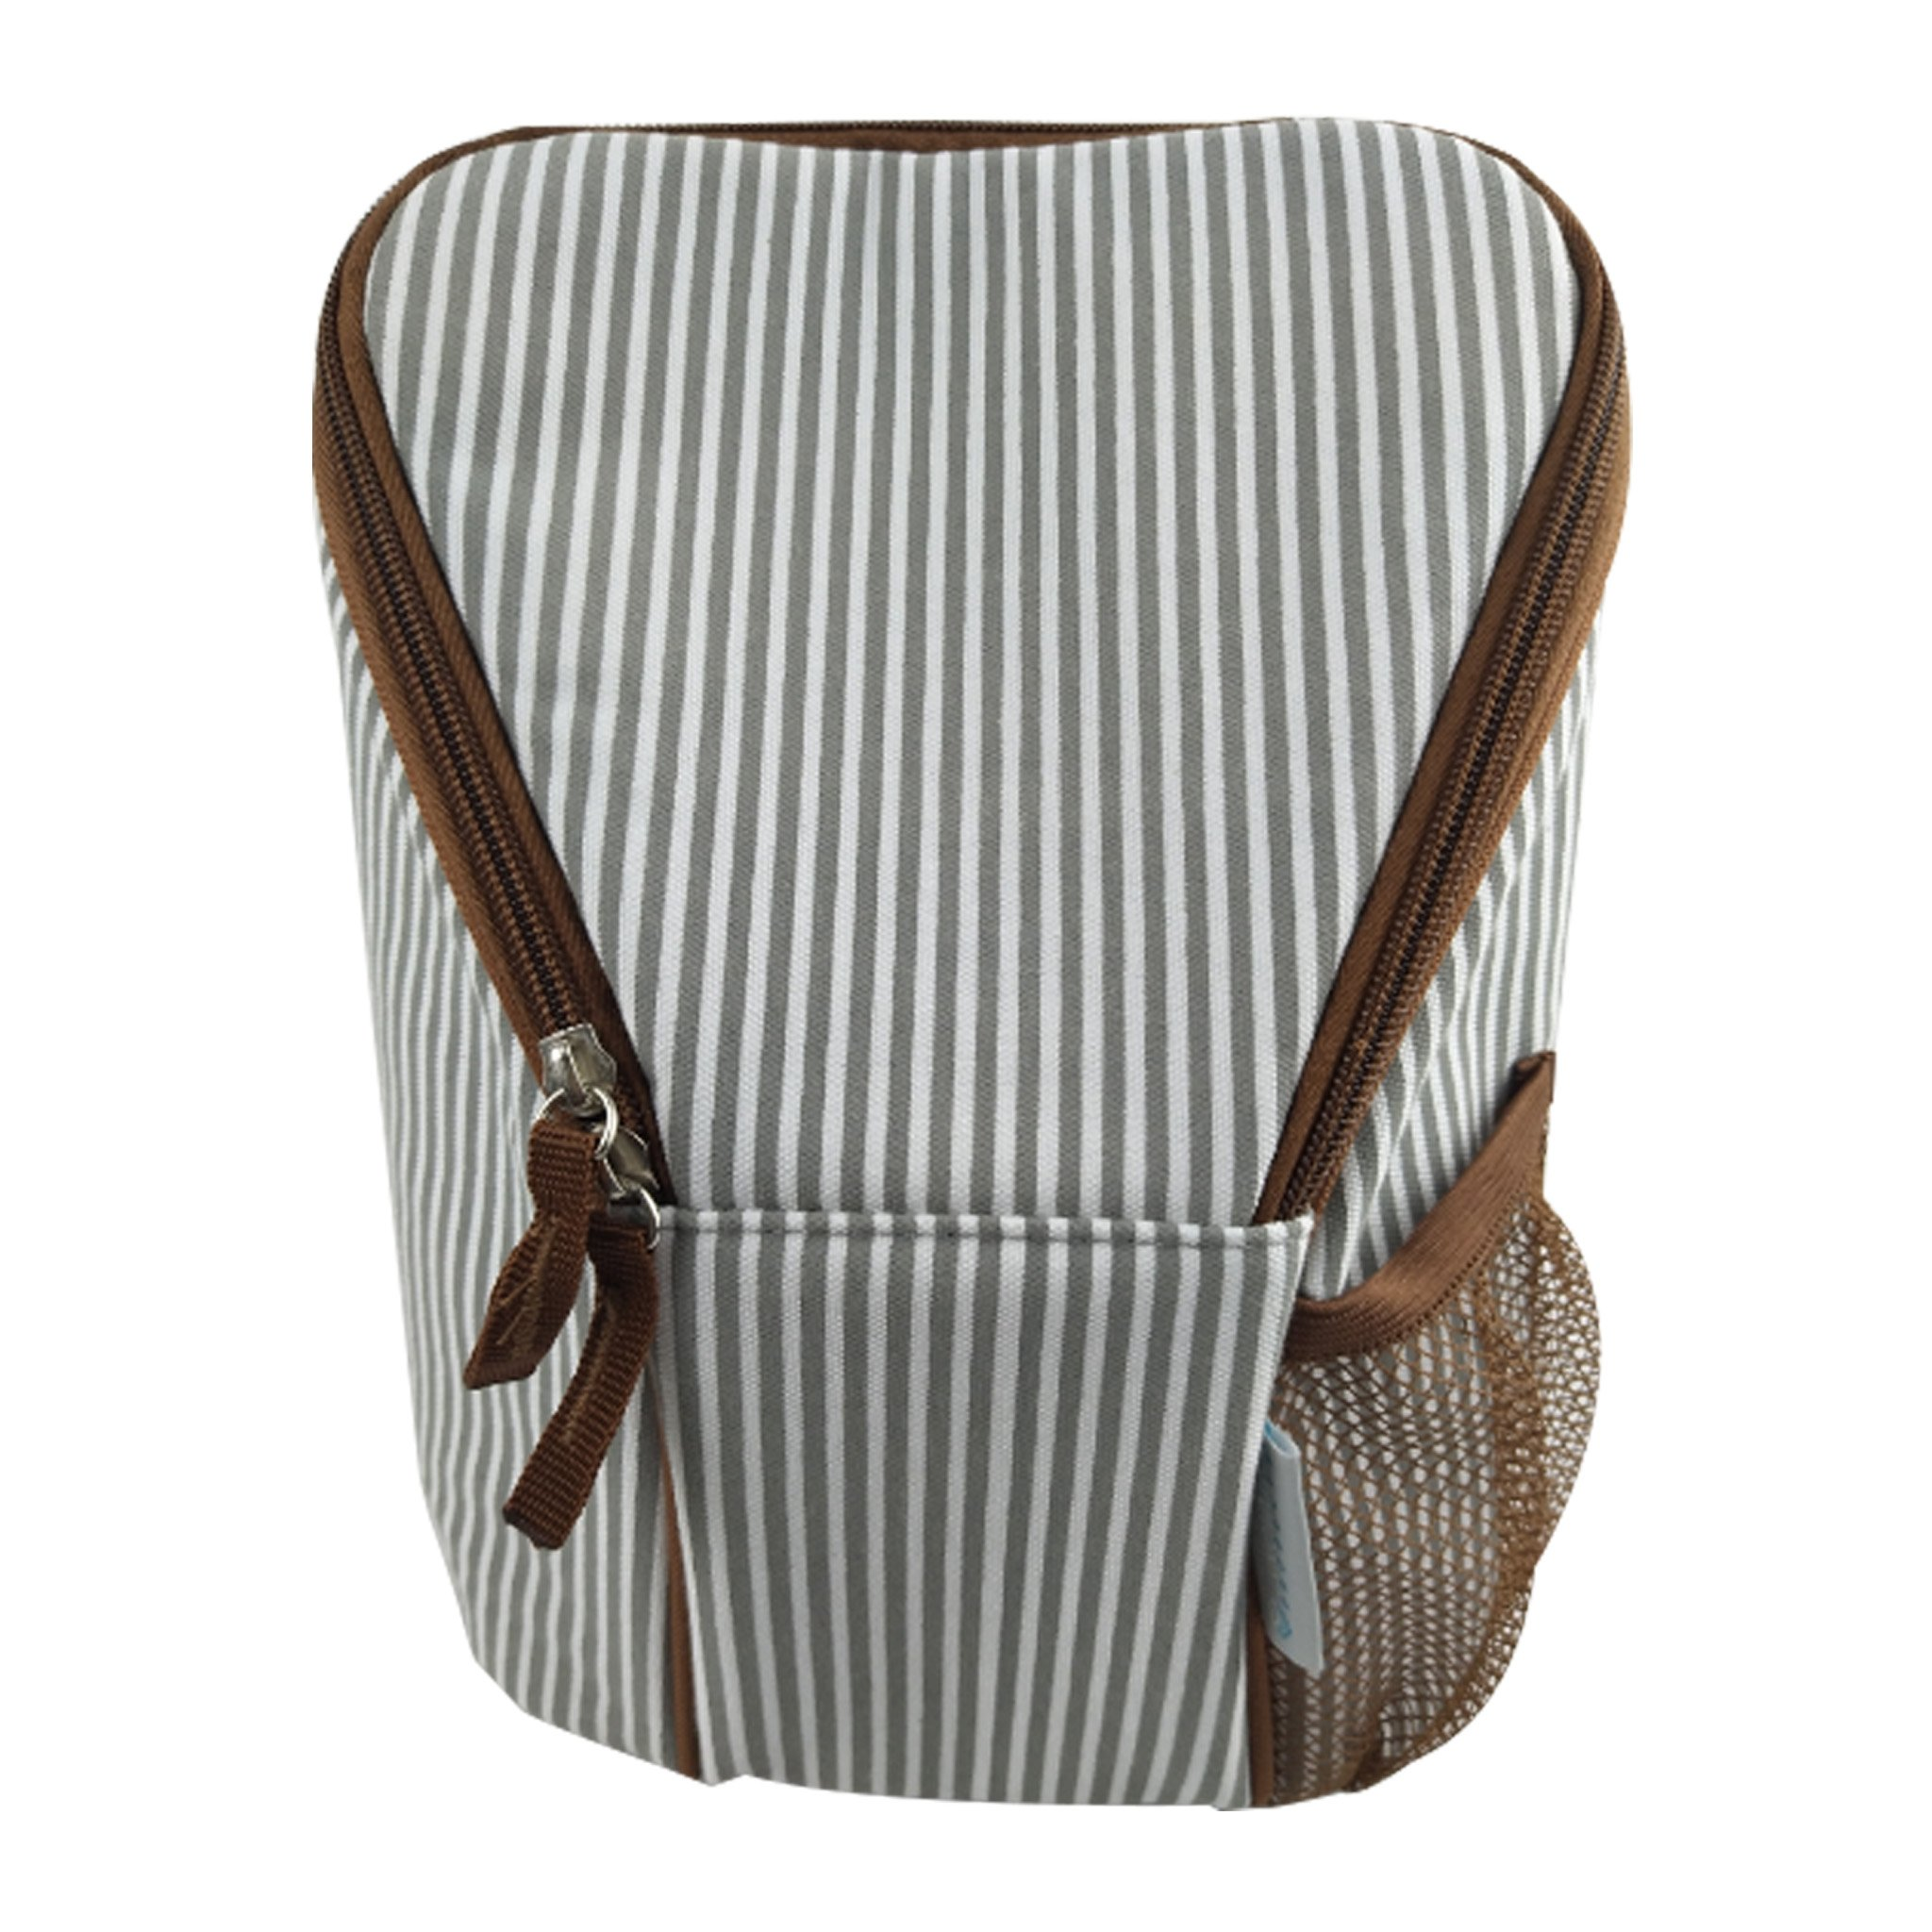 KidZone by IPP - Baby Bottle Bag - Insulated Tote, Dual Zipper, Mesh Pocket with Ice Pack (Grey/White Mini-Stripe Brown Trim)